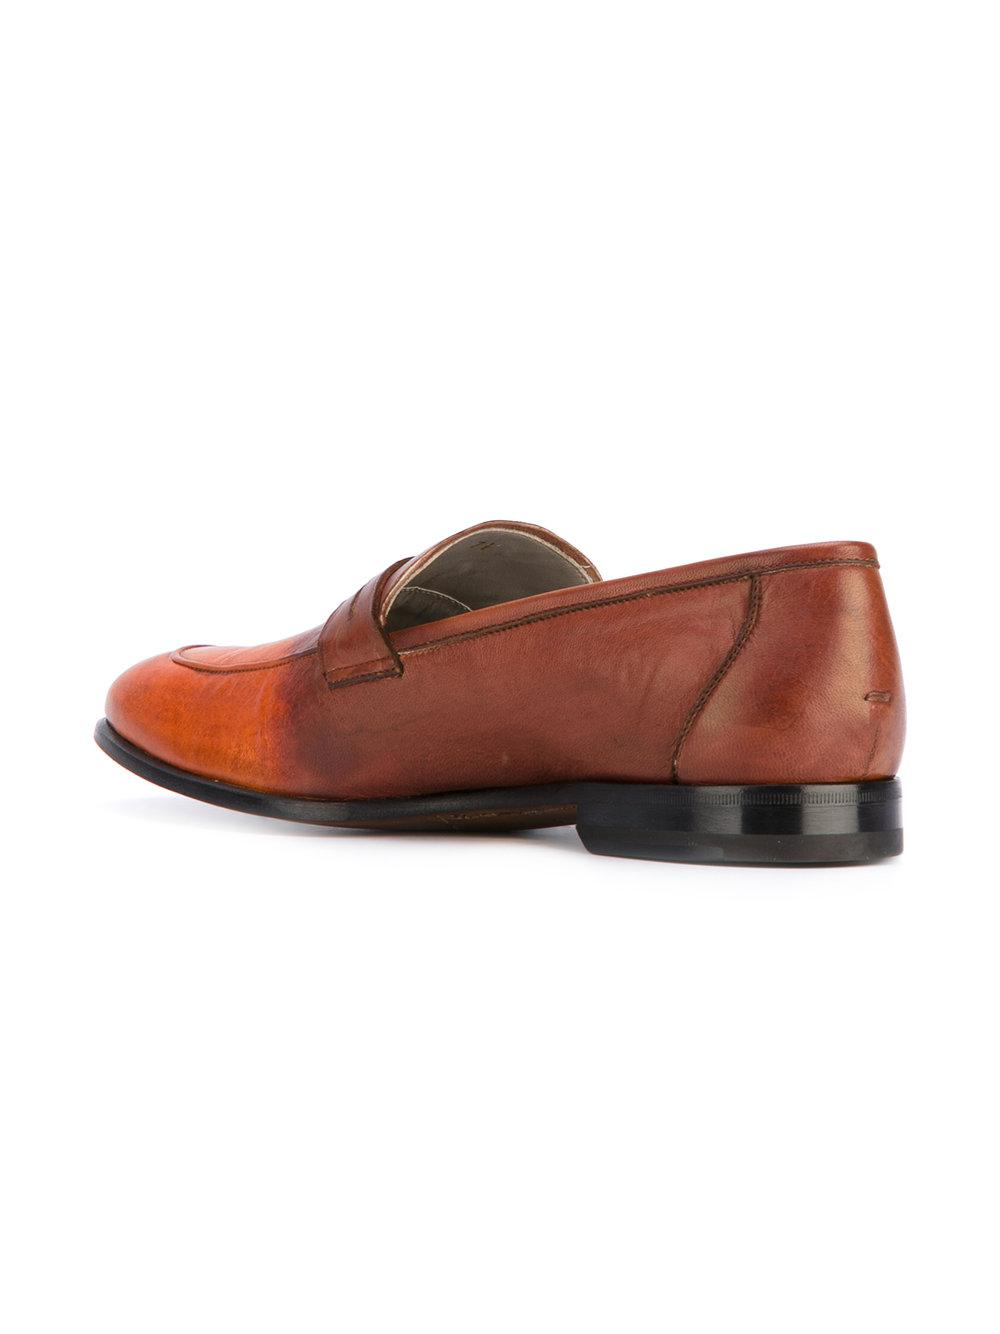 mid top loafers - Brown Kiton lcN9t